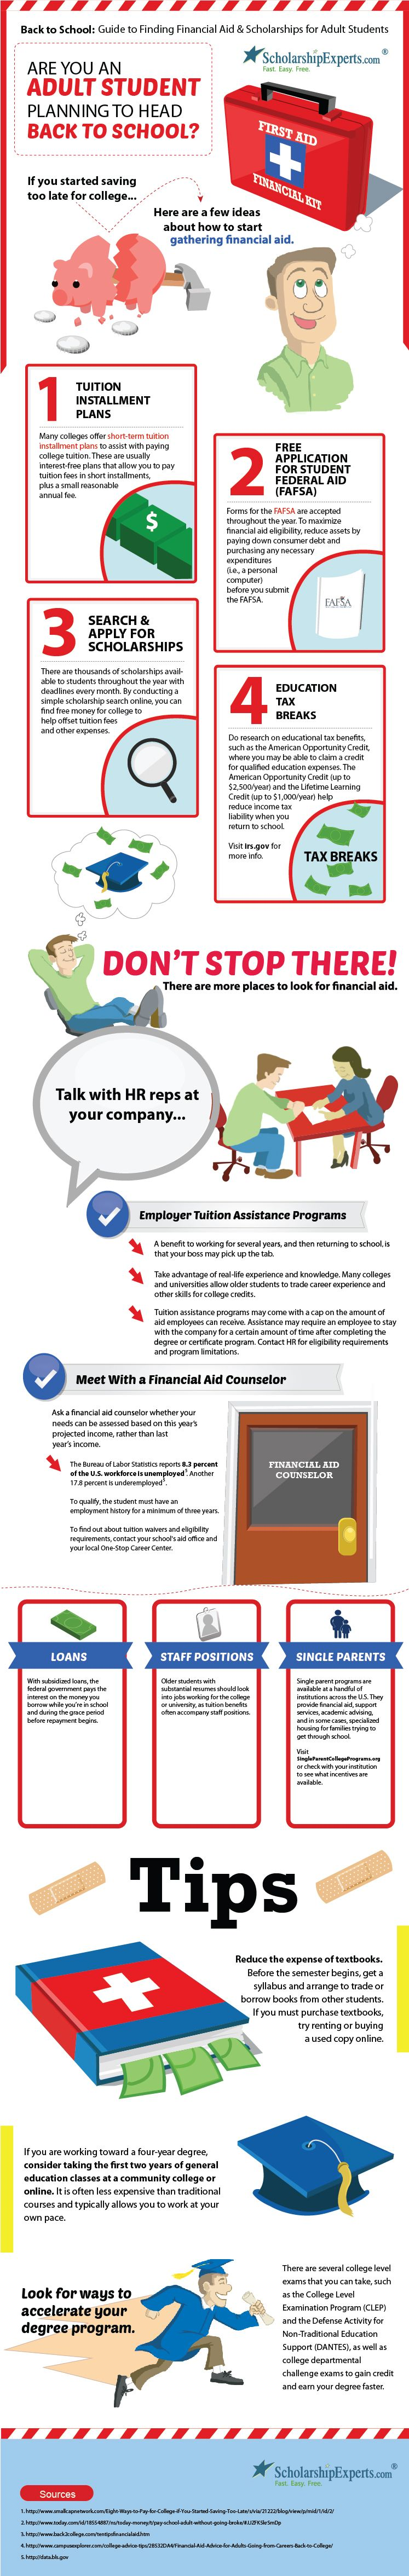 Financial Assistance for Study Abroad Students | Financial Aid